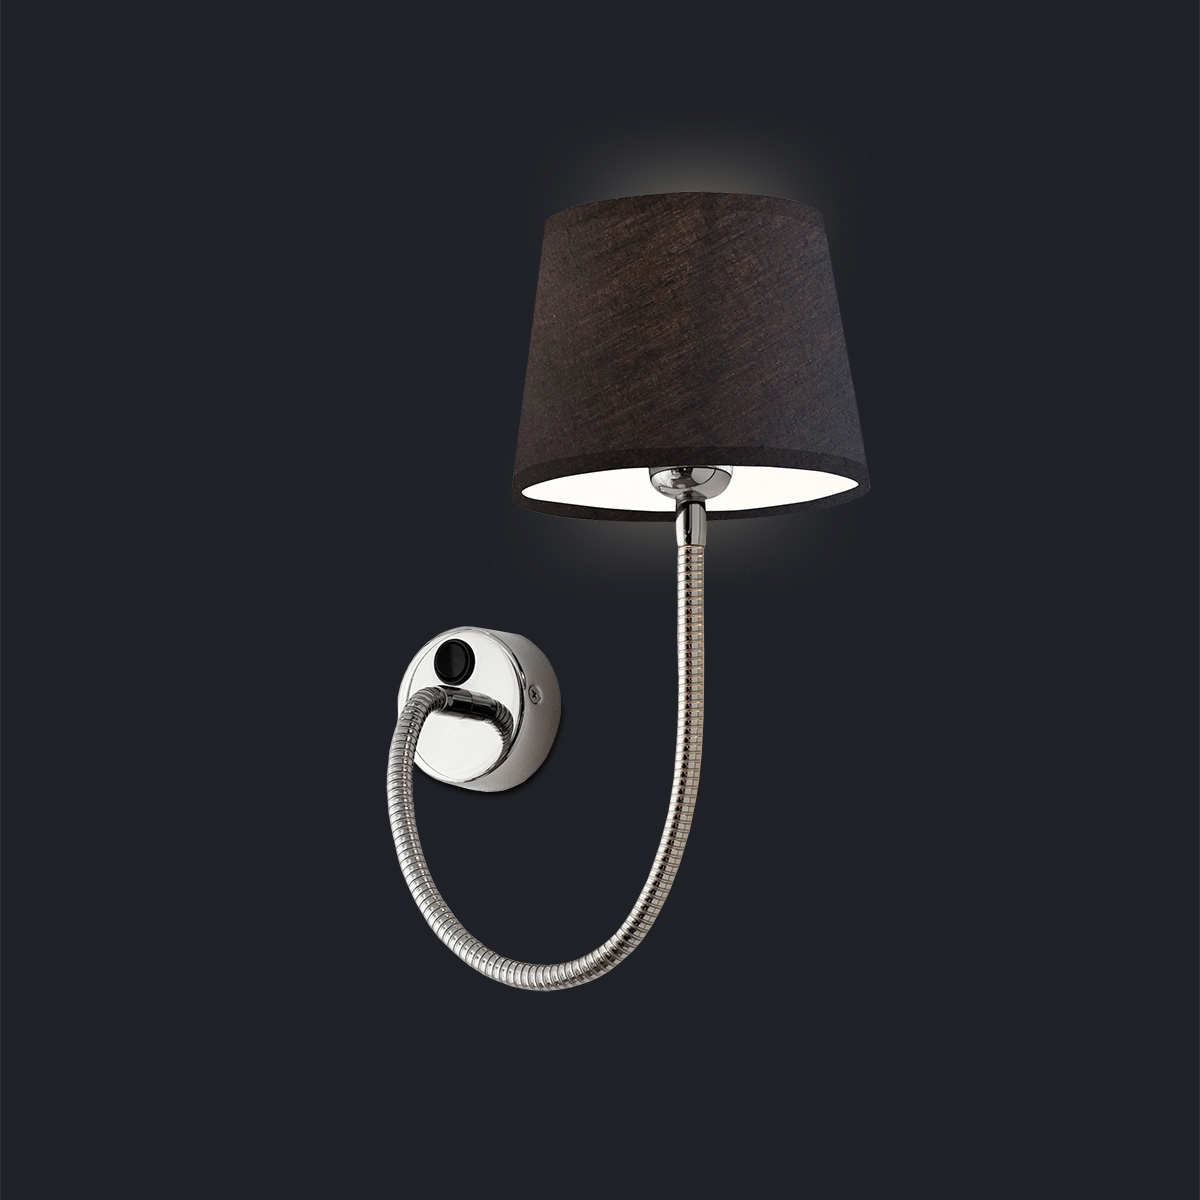 Wall Lamp With Attached Switch And Shade